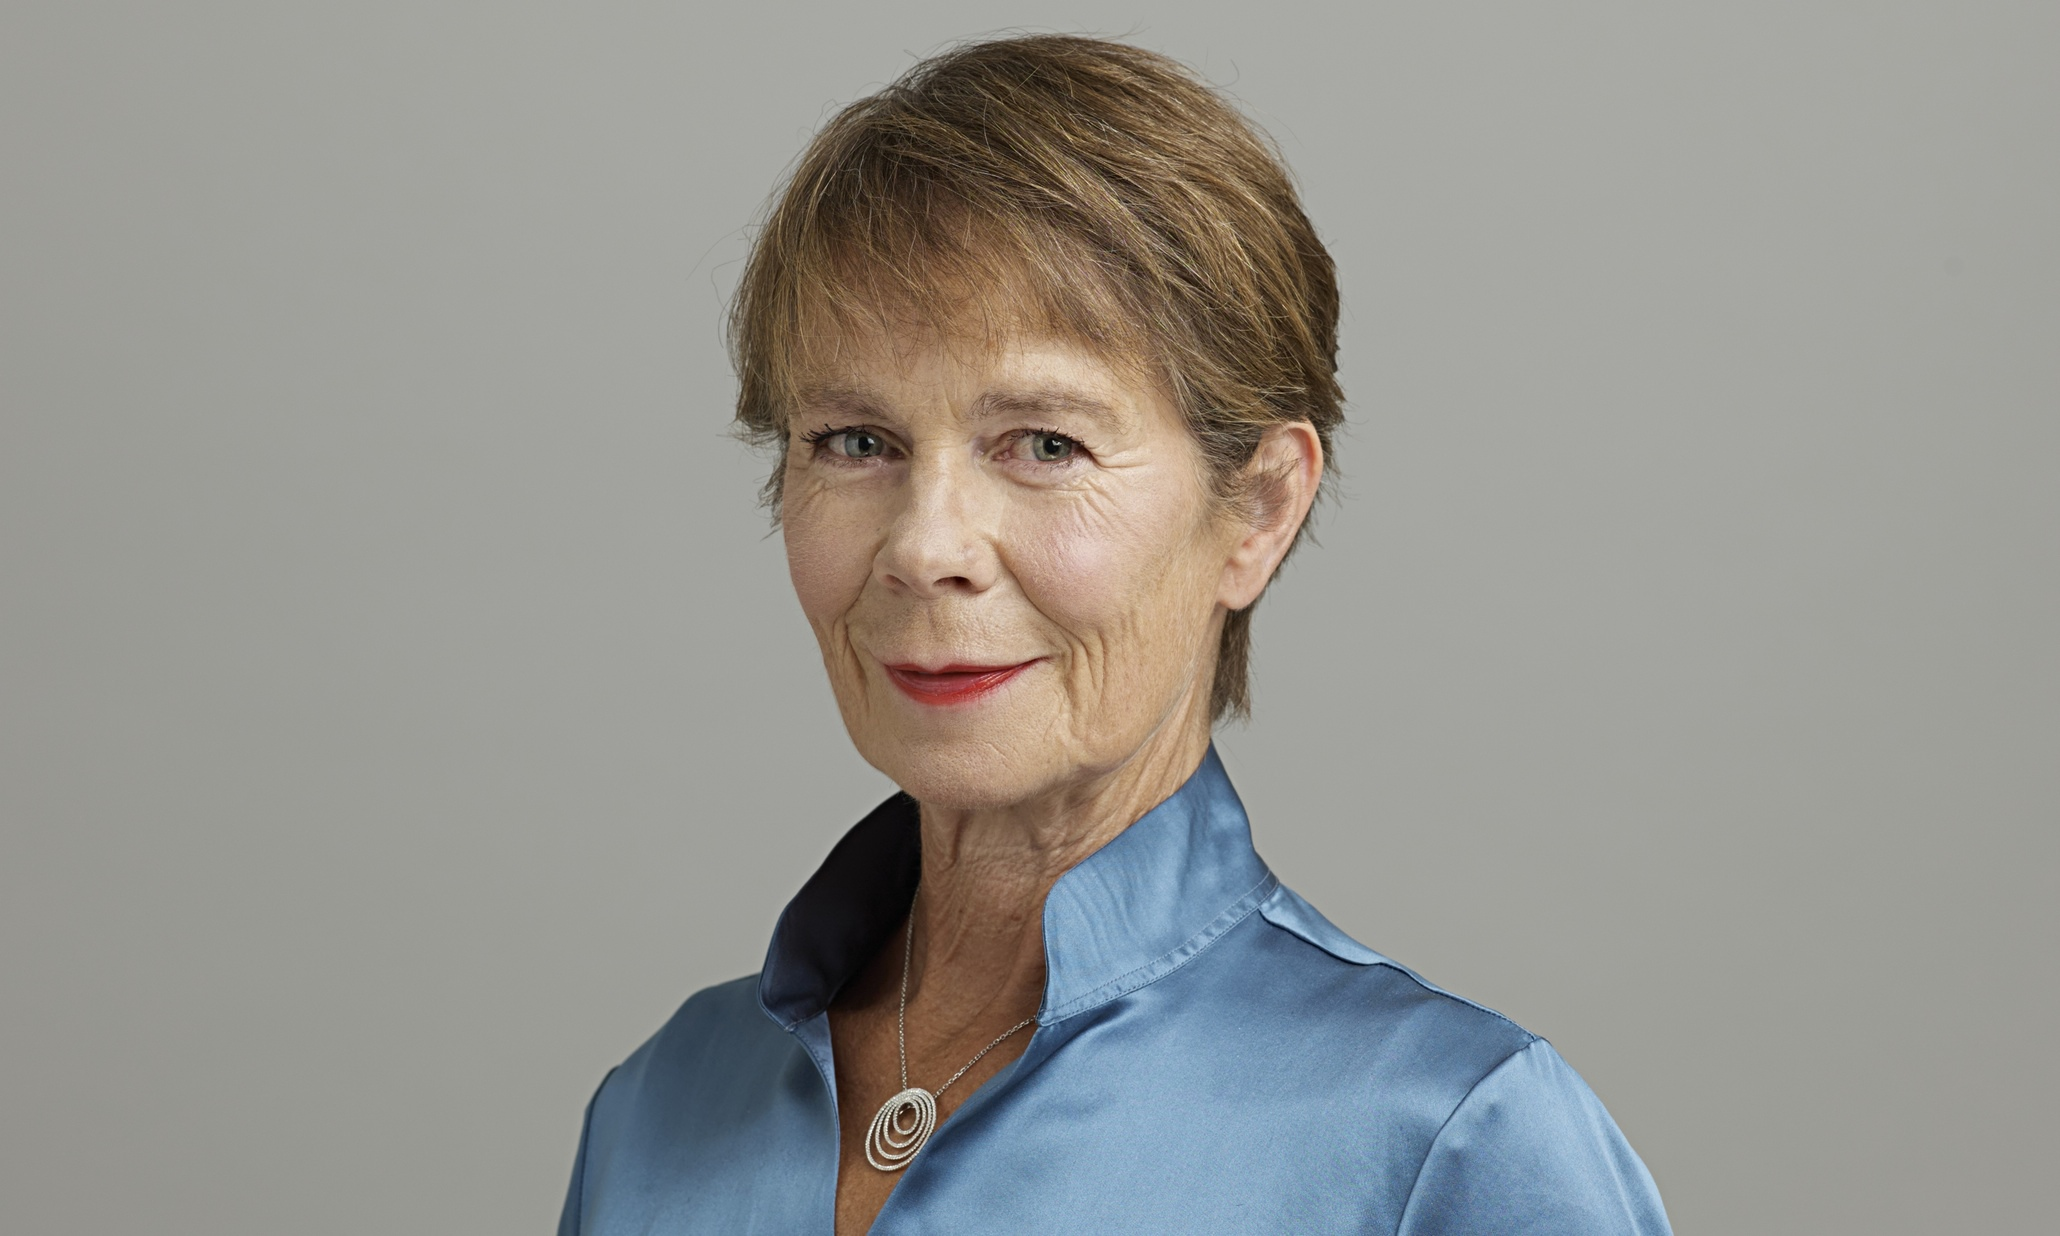 celia imrie imdbcelia imrie young, celia imrie instagram, celia imrie, celia imrie star wars, celia imrie imdb, celia imrie bergerac, celia imrie new book, celia imrie doctor who, celia imrie harry potter, celia imrie book, celia imrie son, celia imrie movies, celia imrie breasts, celia imrie hot, celia imrie twitter, celia imrie images, celia imrie victoria wood, celia imrie partner, celia imrie measurements, celia imrie husband